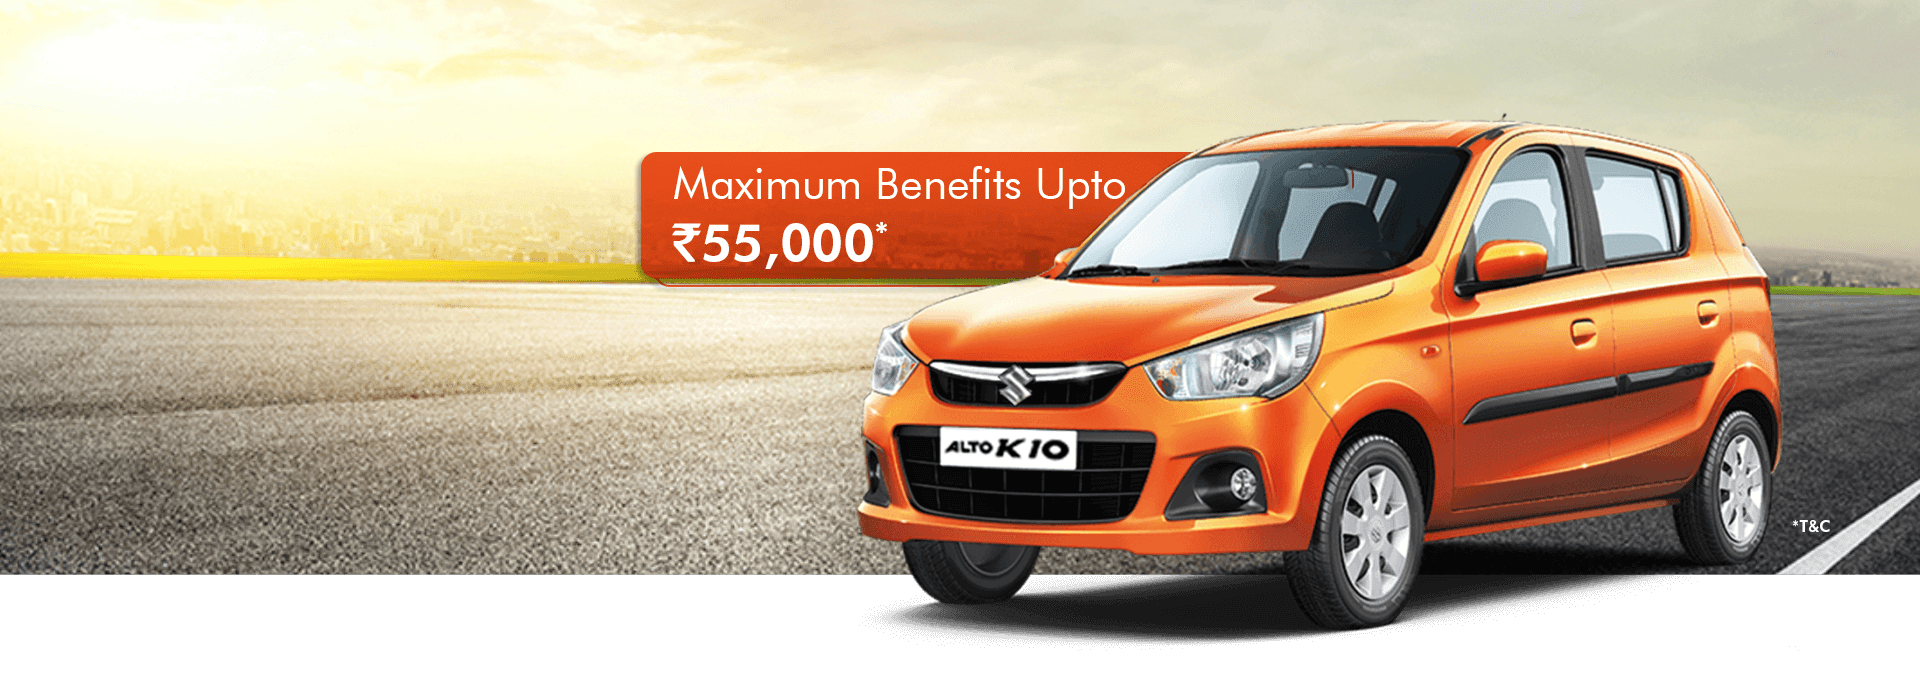 Buy Alto K10 in Mumbai